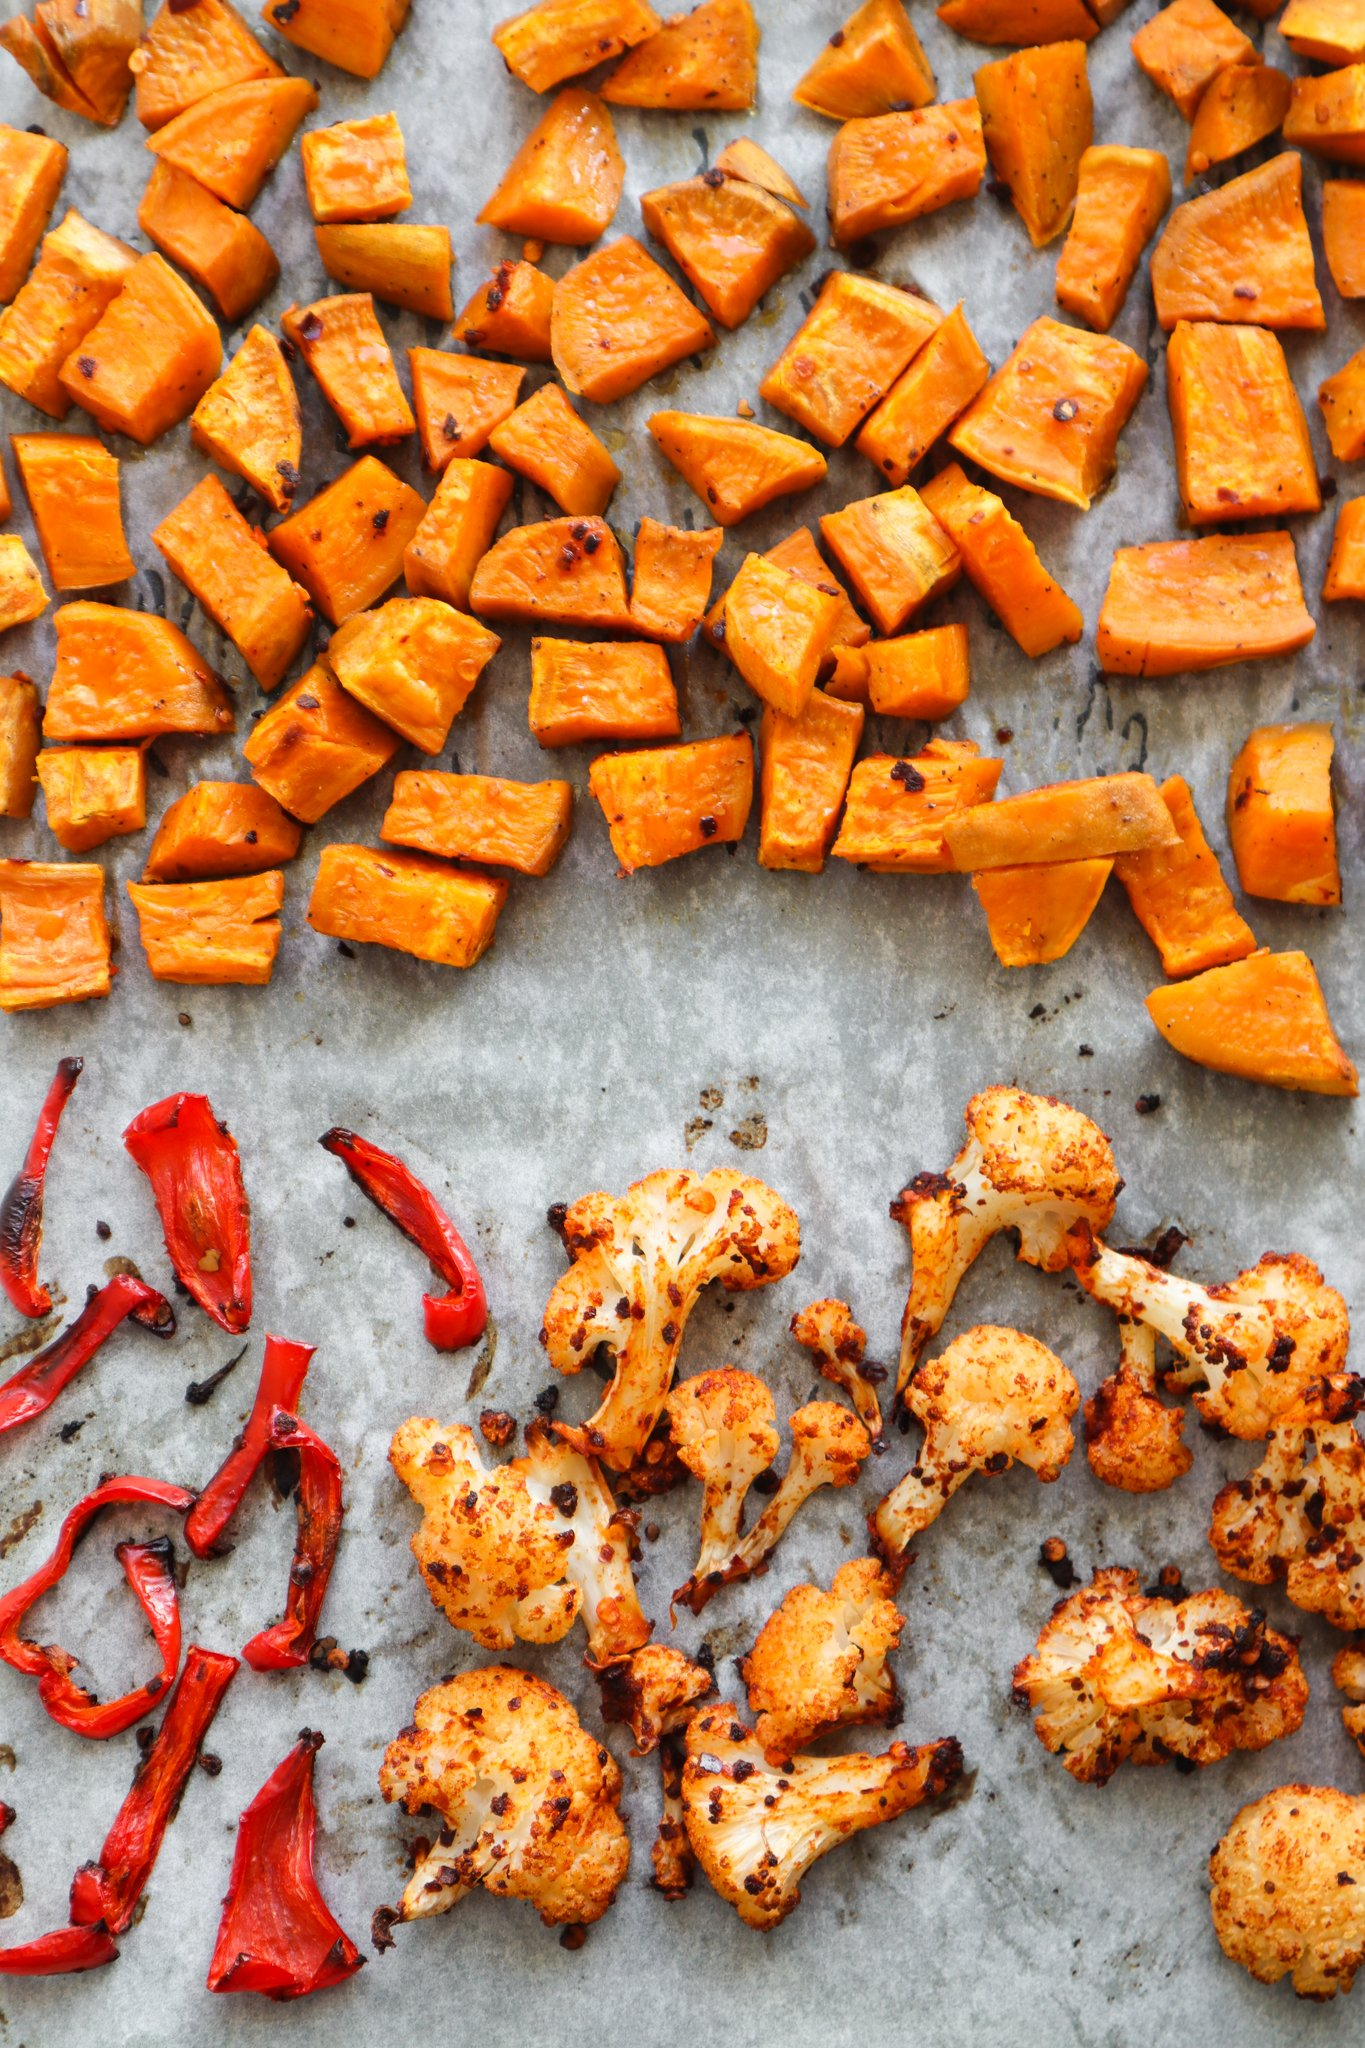 A super easy roasted vegetable recipe for spicy roasted cauliflower, sweet potatoes and a sad little red pepper. This healthy side dish recipe is great for meal prep, vegan, gluten free and paleo.